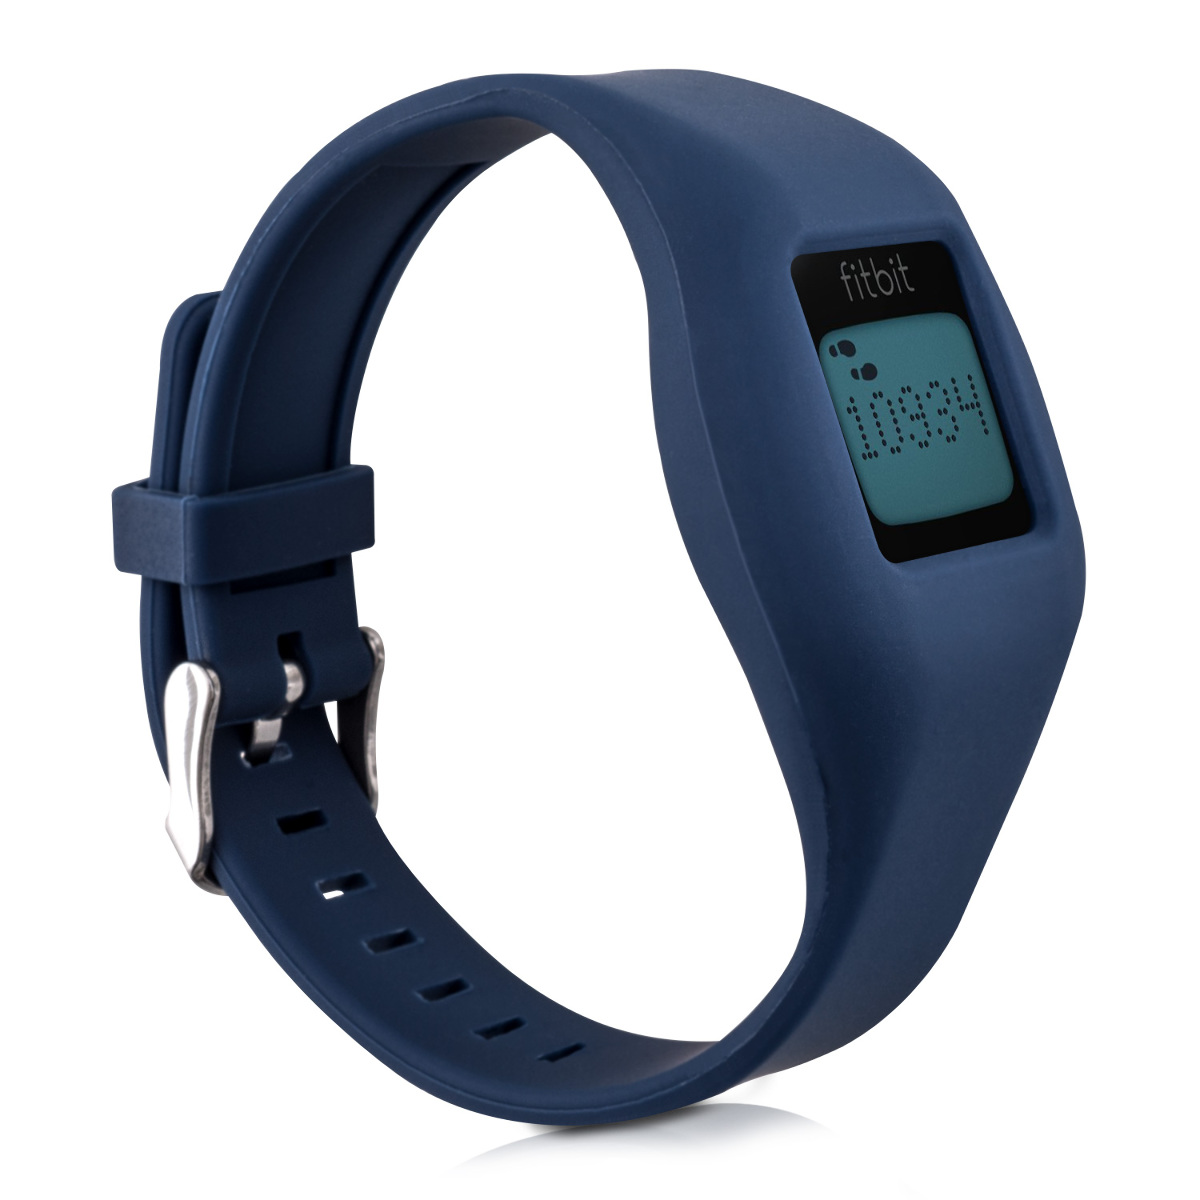 Kwmobile 2x silicone spare bracelet for fitbit zip black fitness clock clasp ebay - Spare time gadgets ...